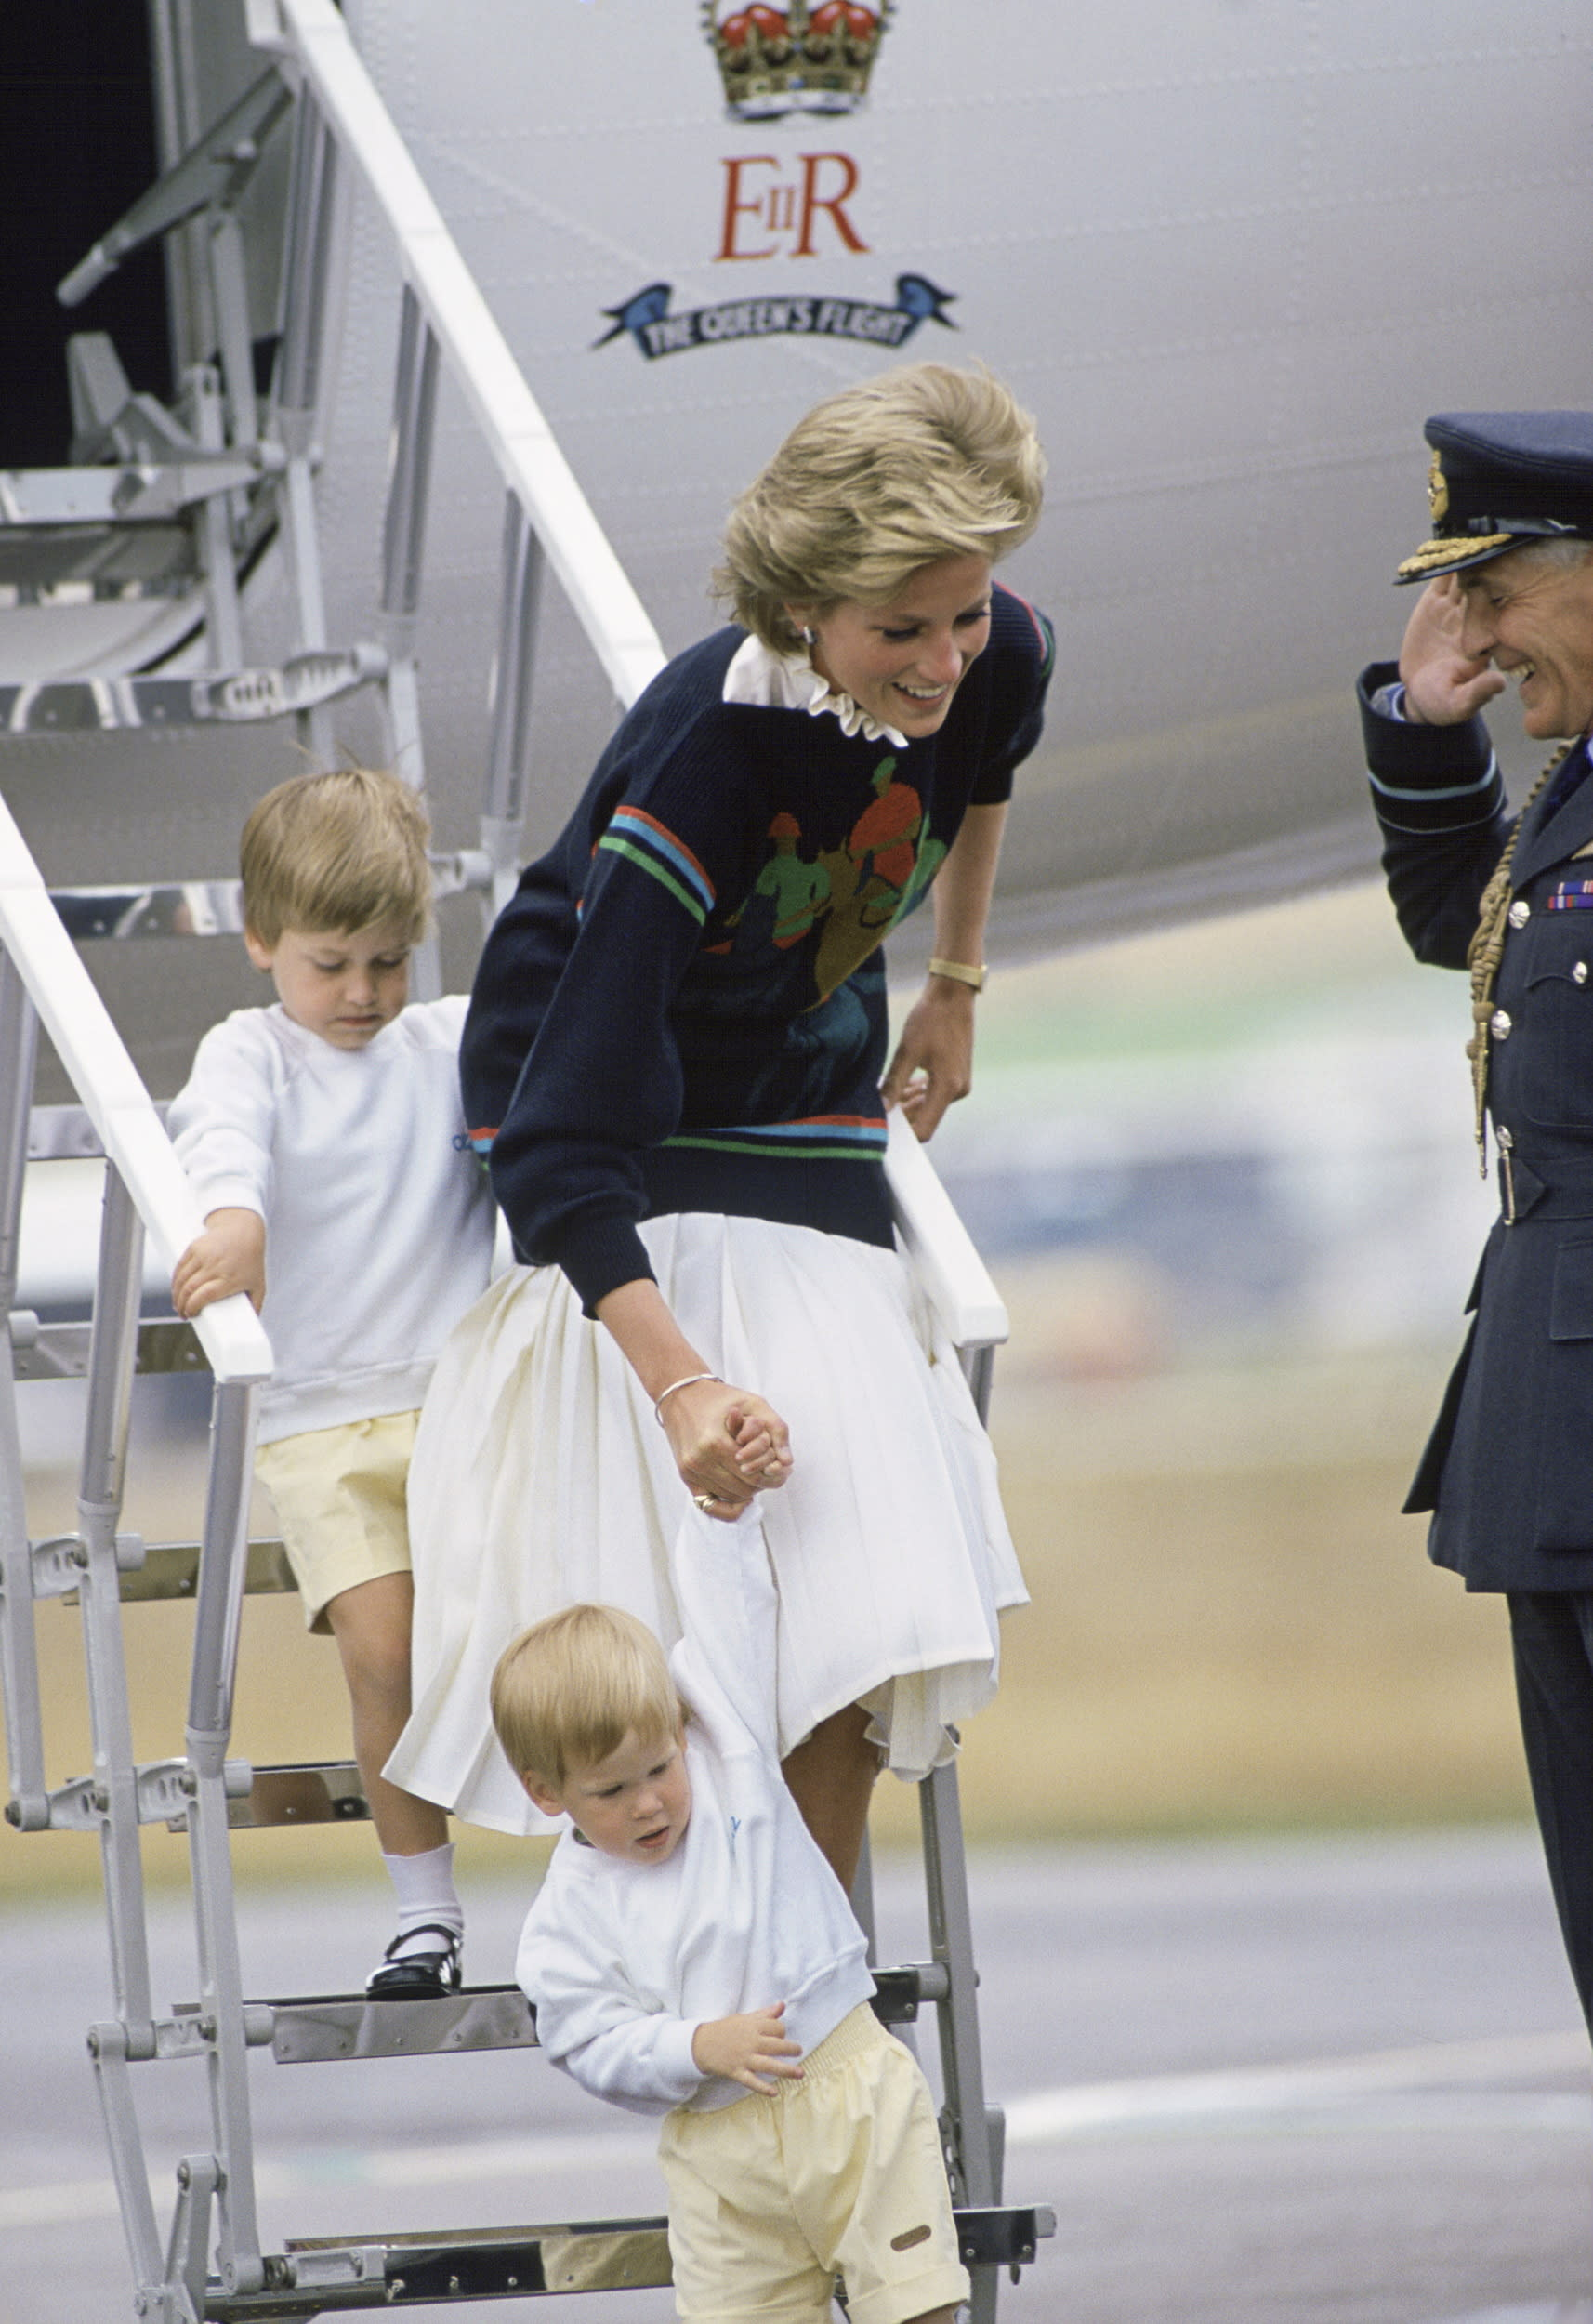 UNITED KINGDOM - AUGUST 16:  Princess Diana Stepping Off A Royal Flight With Her Sons Prince William And Prince Harry At Aberdeen Airport At The Start Of Their Holiday.  Her Jumper Has A Motif Of A Polo Player  (Photo by Tim Graham/Getty Images)